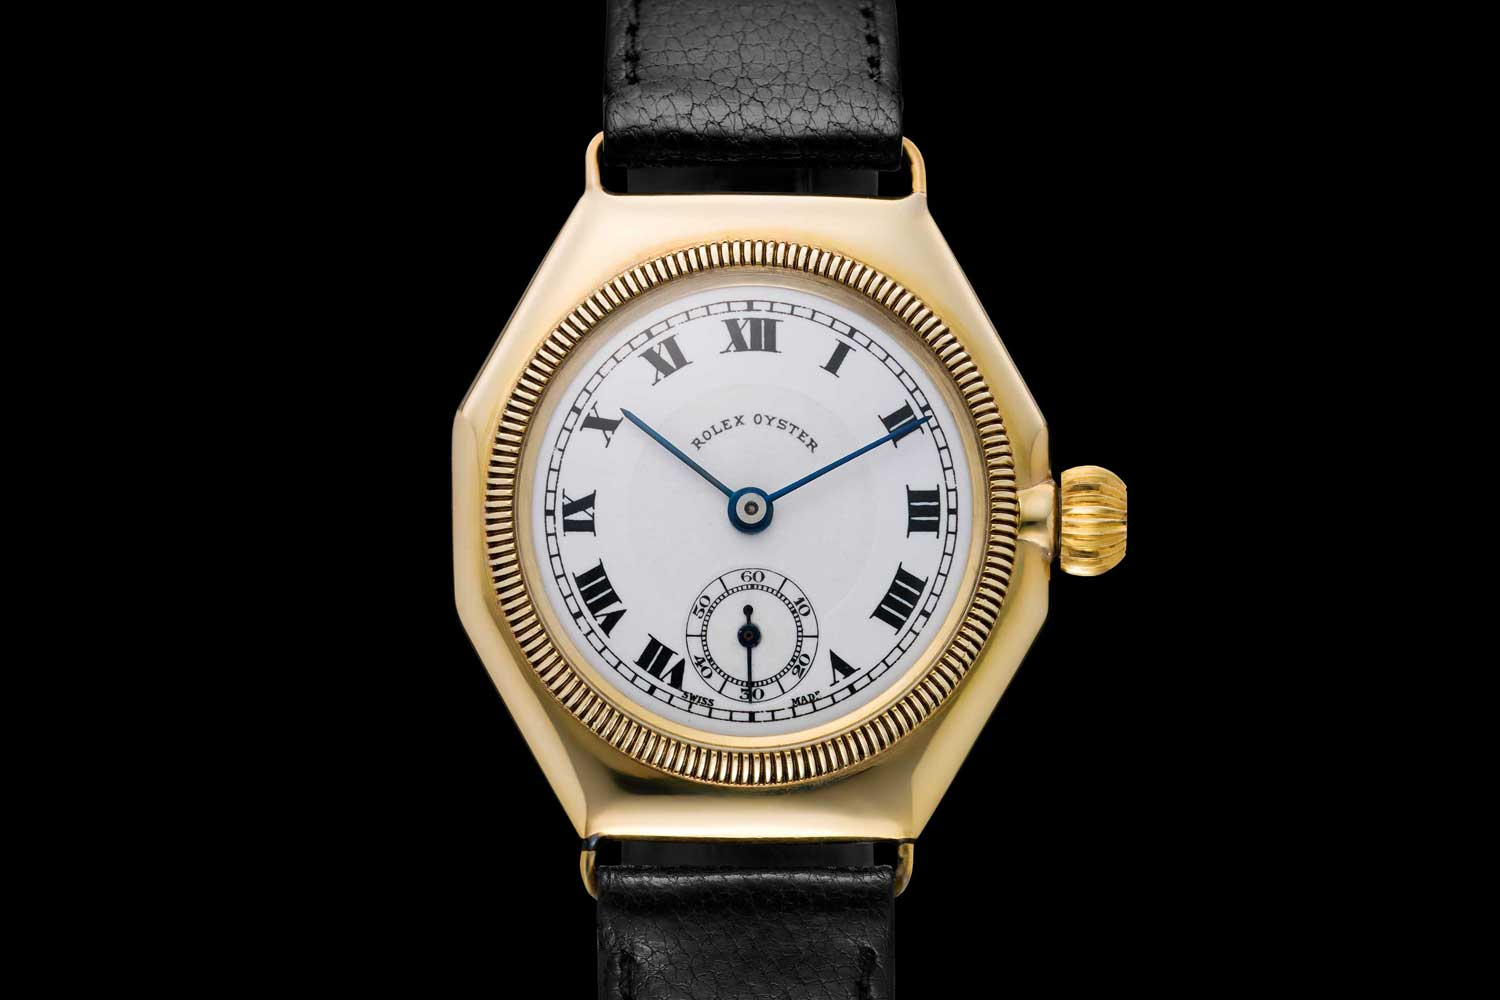 Introduced in 1926, the Oyster watch watch was the world's first waterproof wristwatch